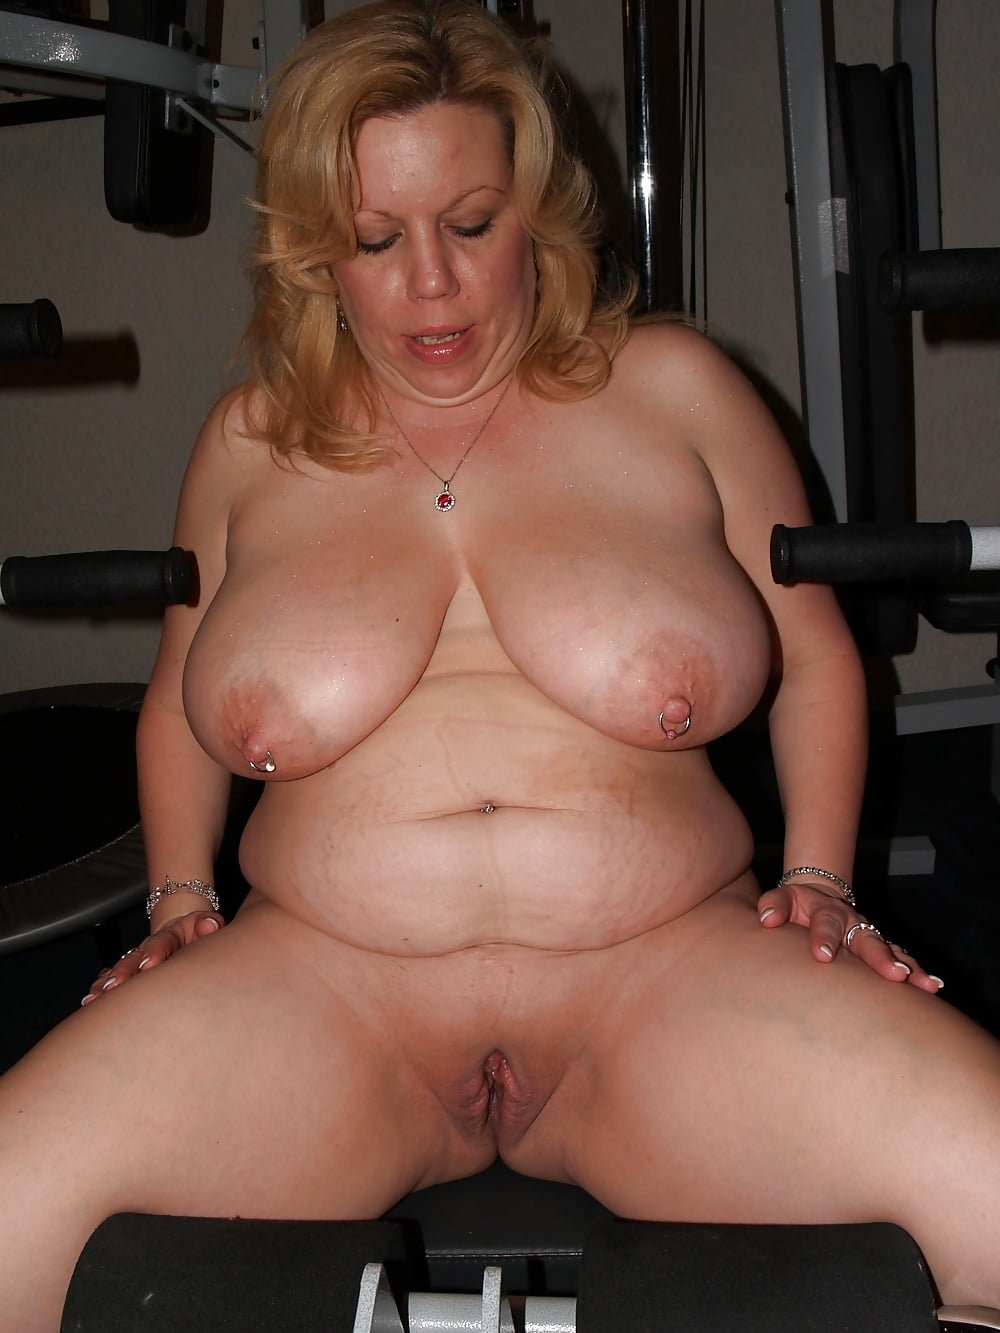 Chubby mature women sex galleries